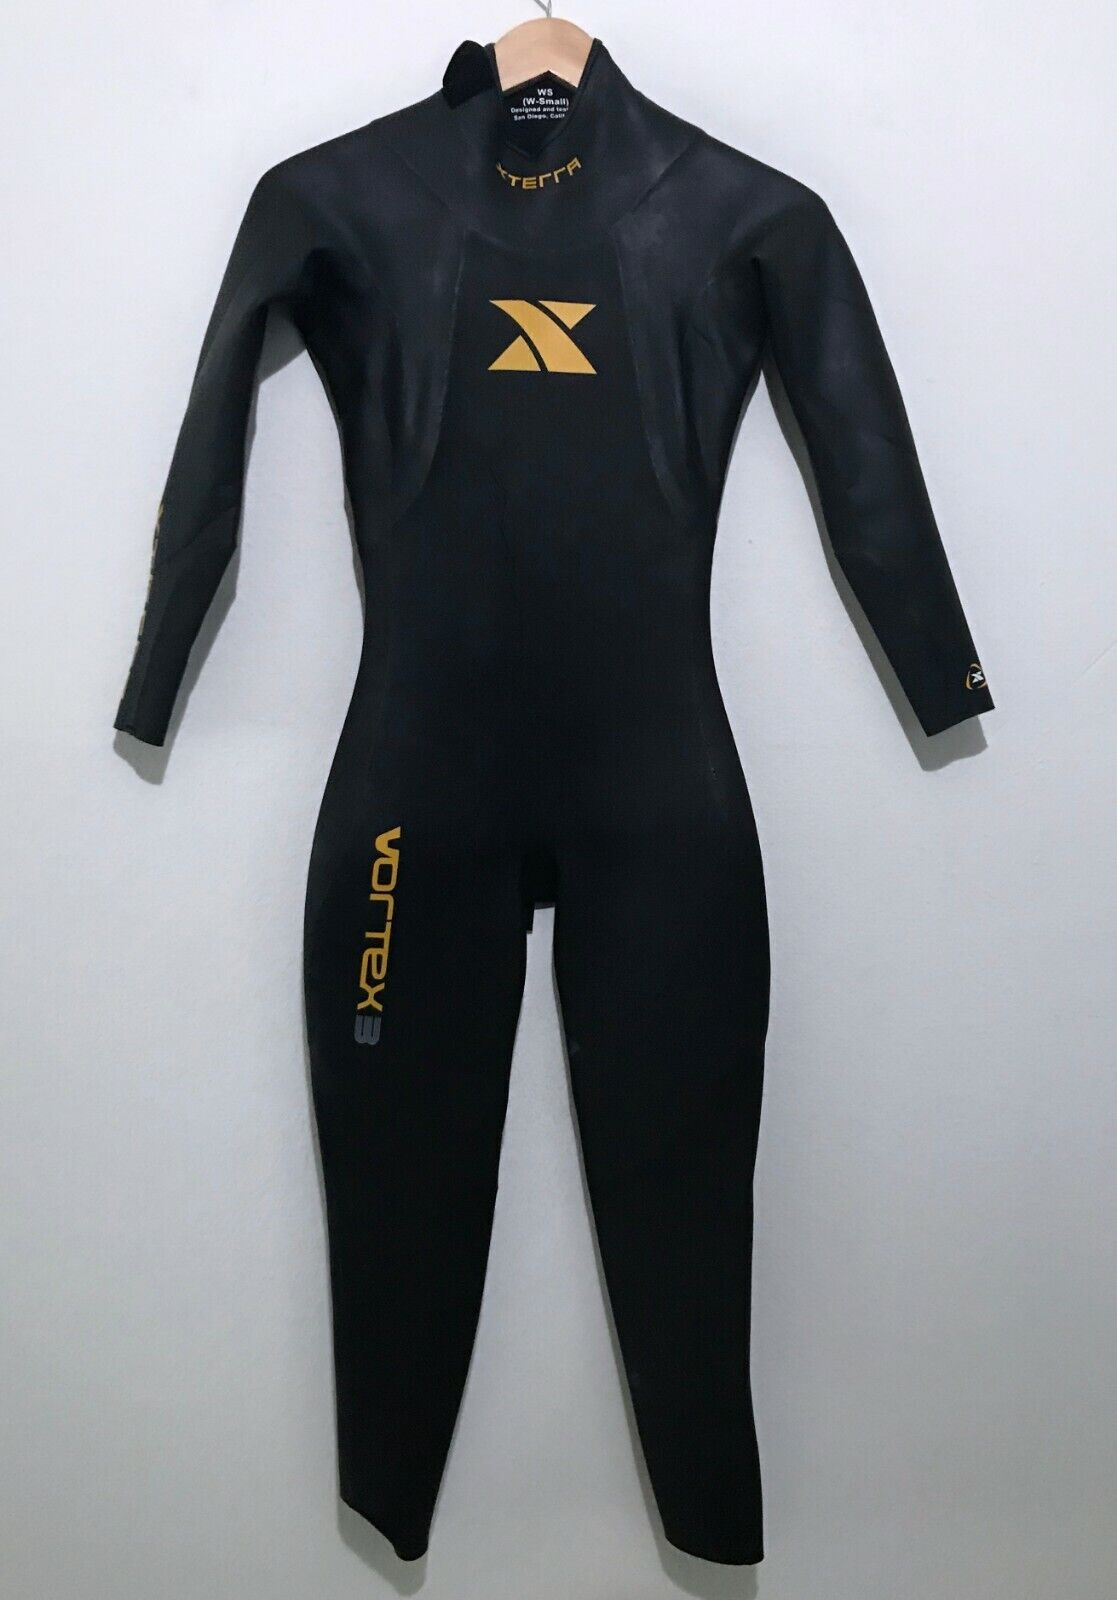 Xterra damen Triathlon Wetsuit Größe Small S Vortex Vortex Vortex 3 Full Suit 81eb23